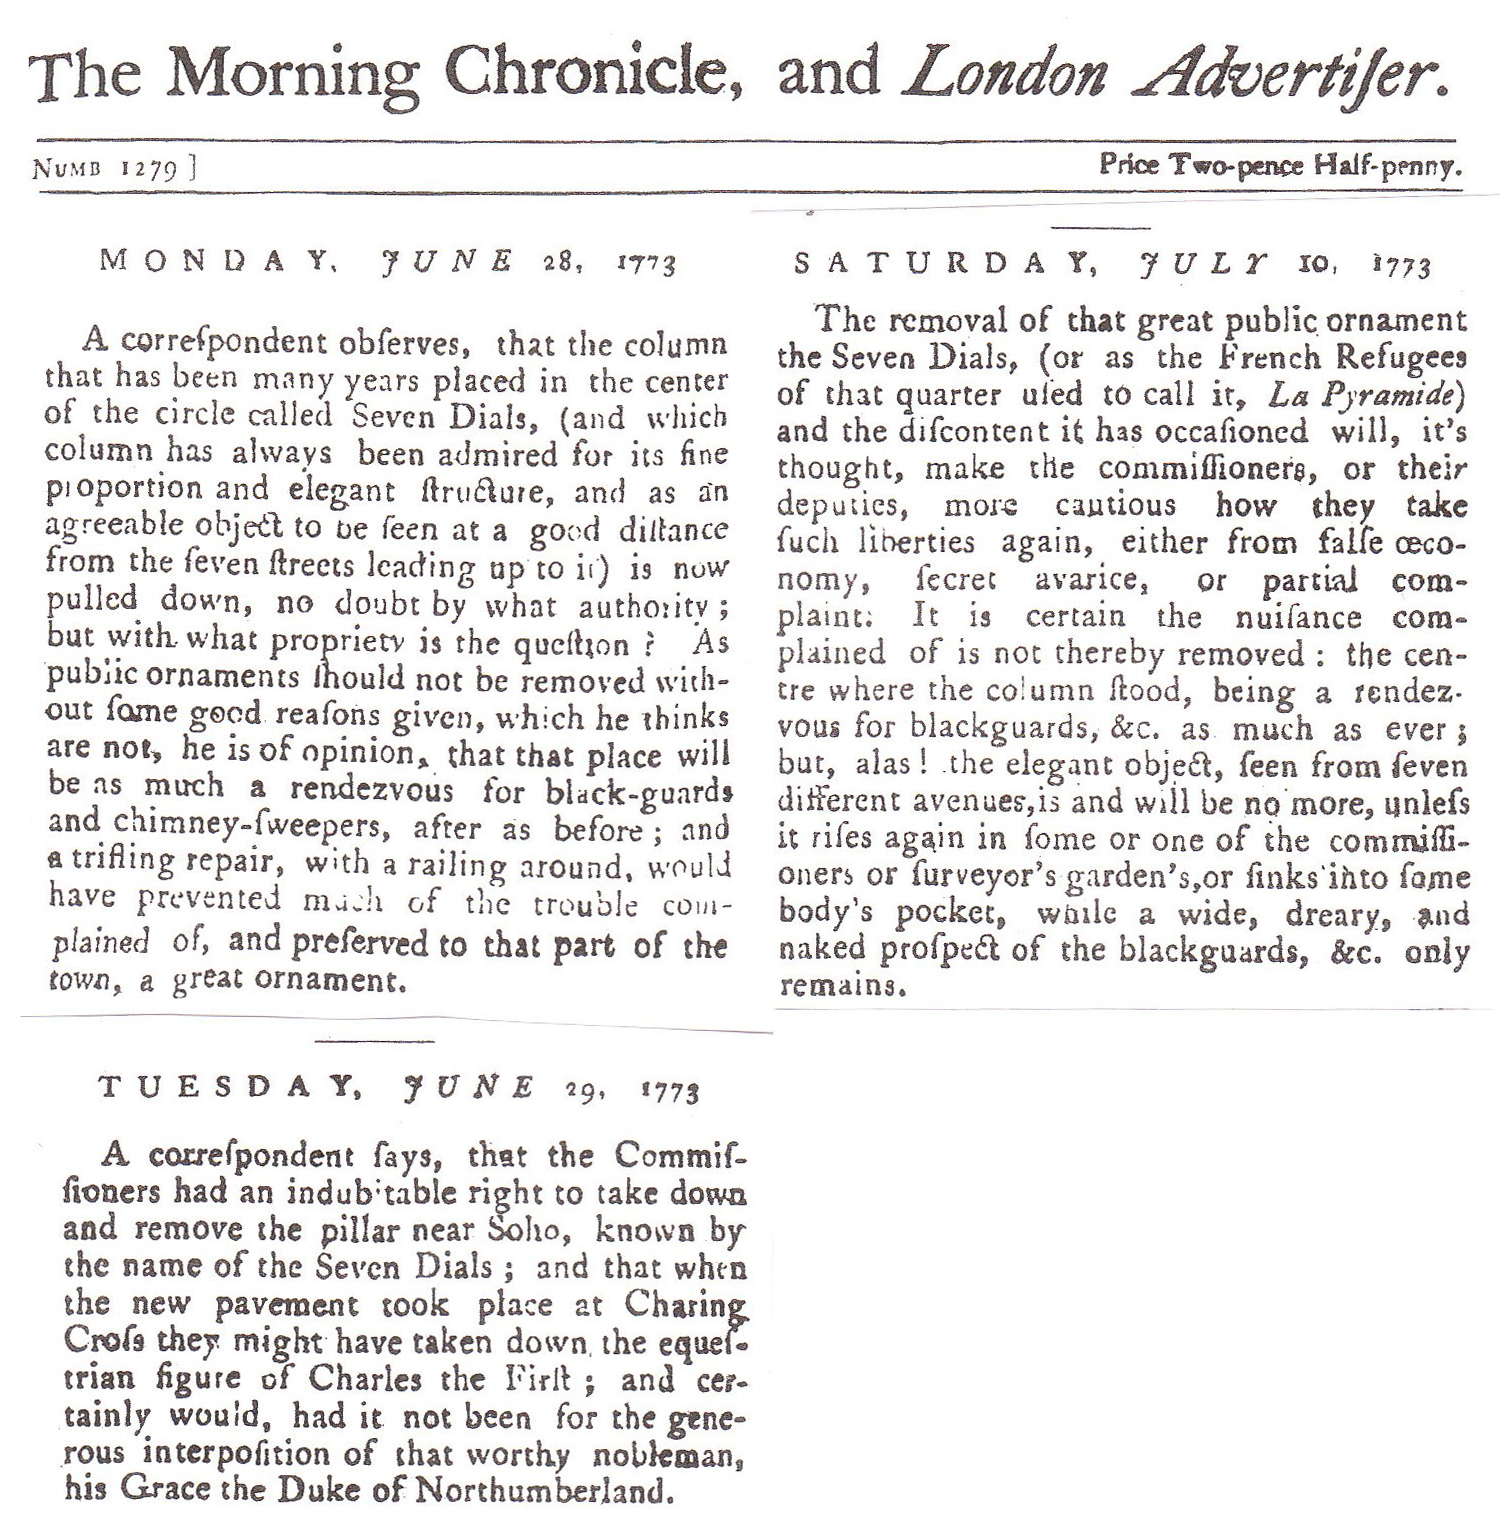 1773 � The Morning Chronicle and London Advertiser: Removal of the Sun Dial Column.